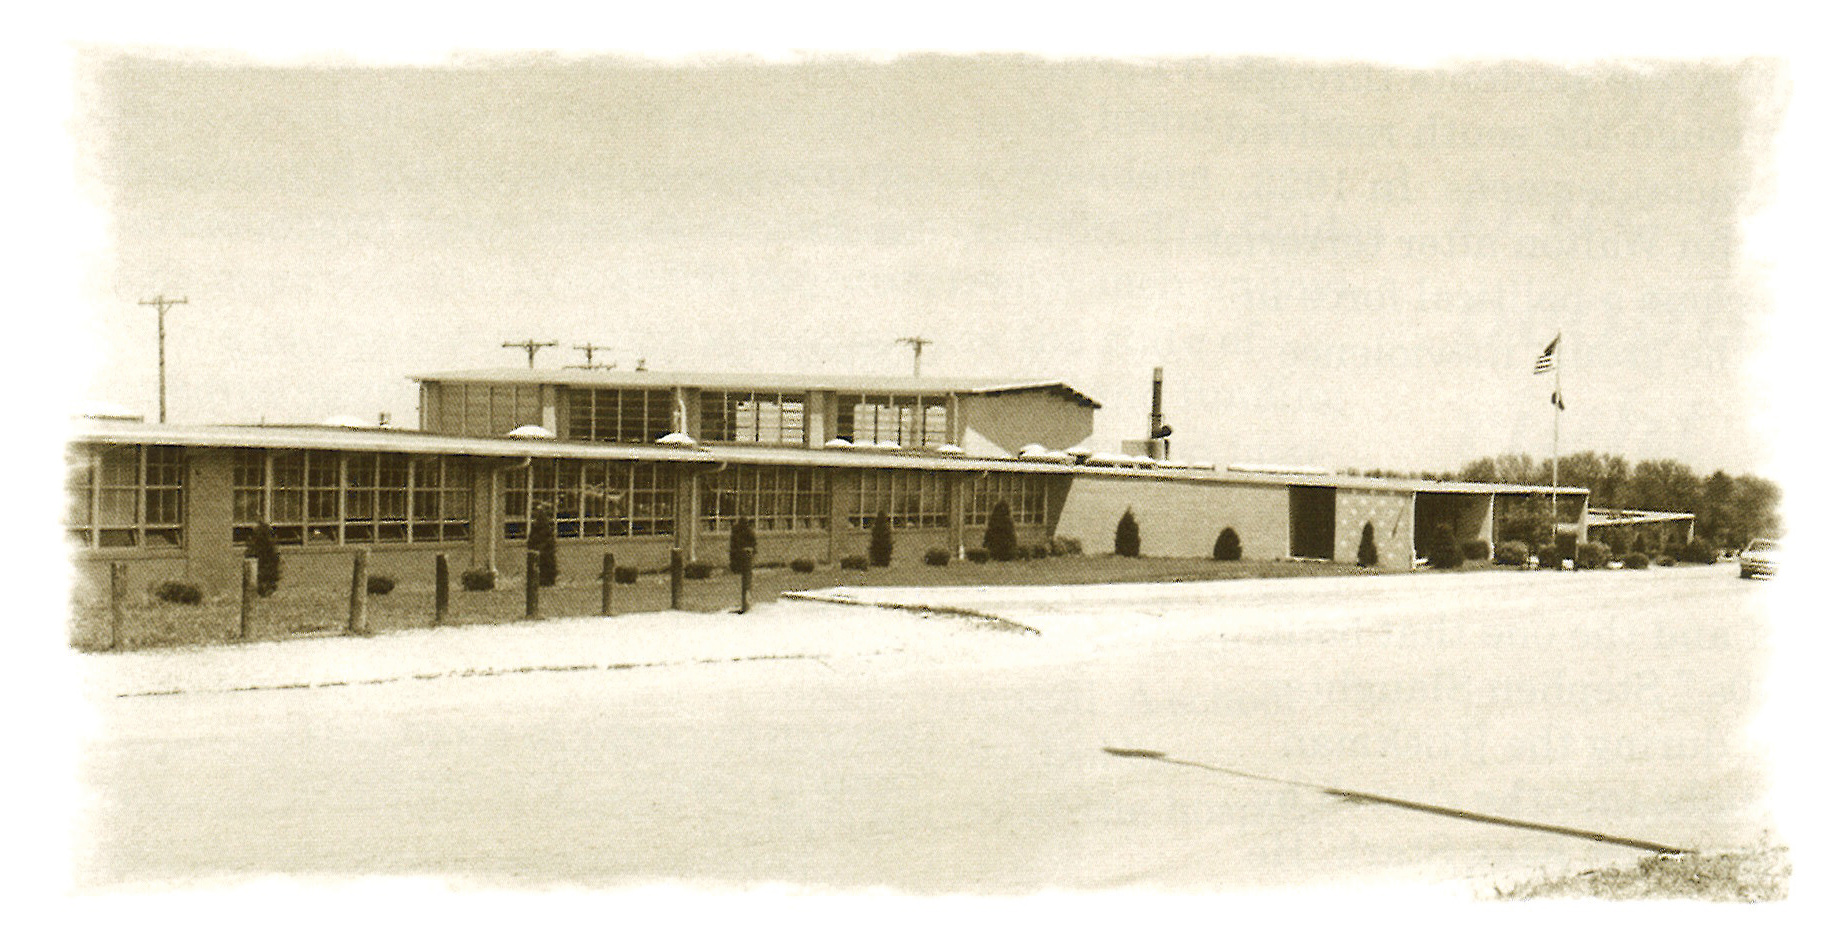 Symington Elementary opened in January, 1959